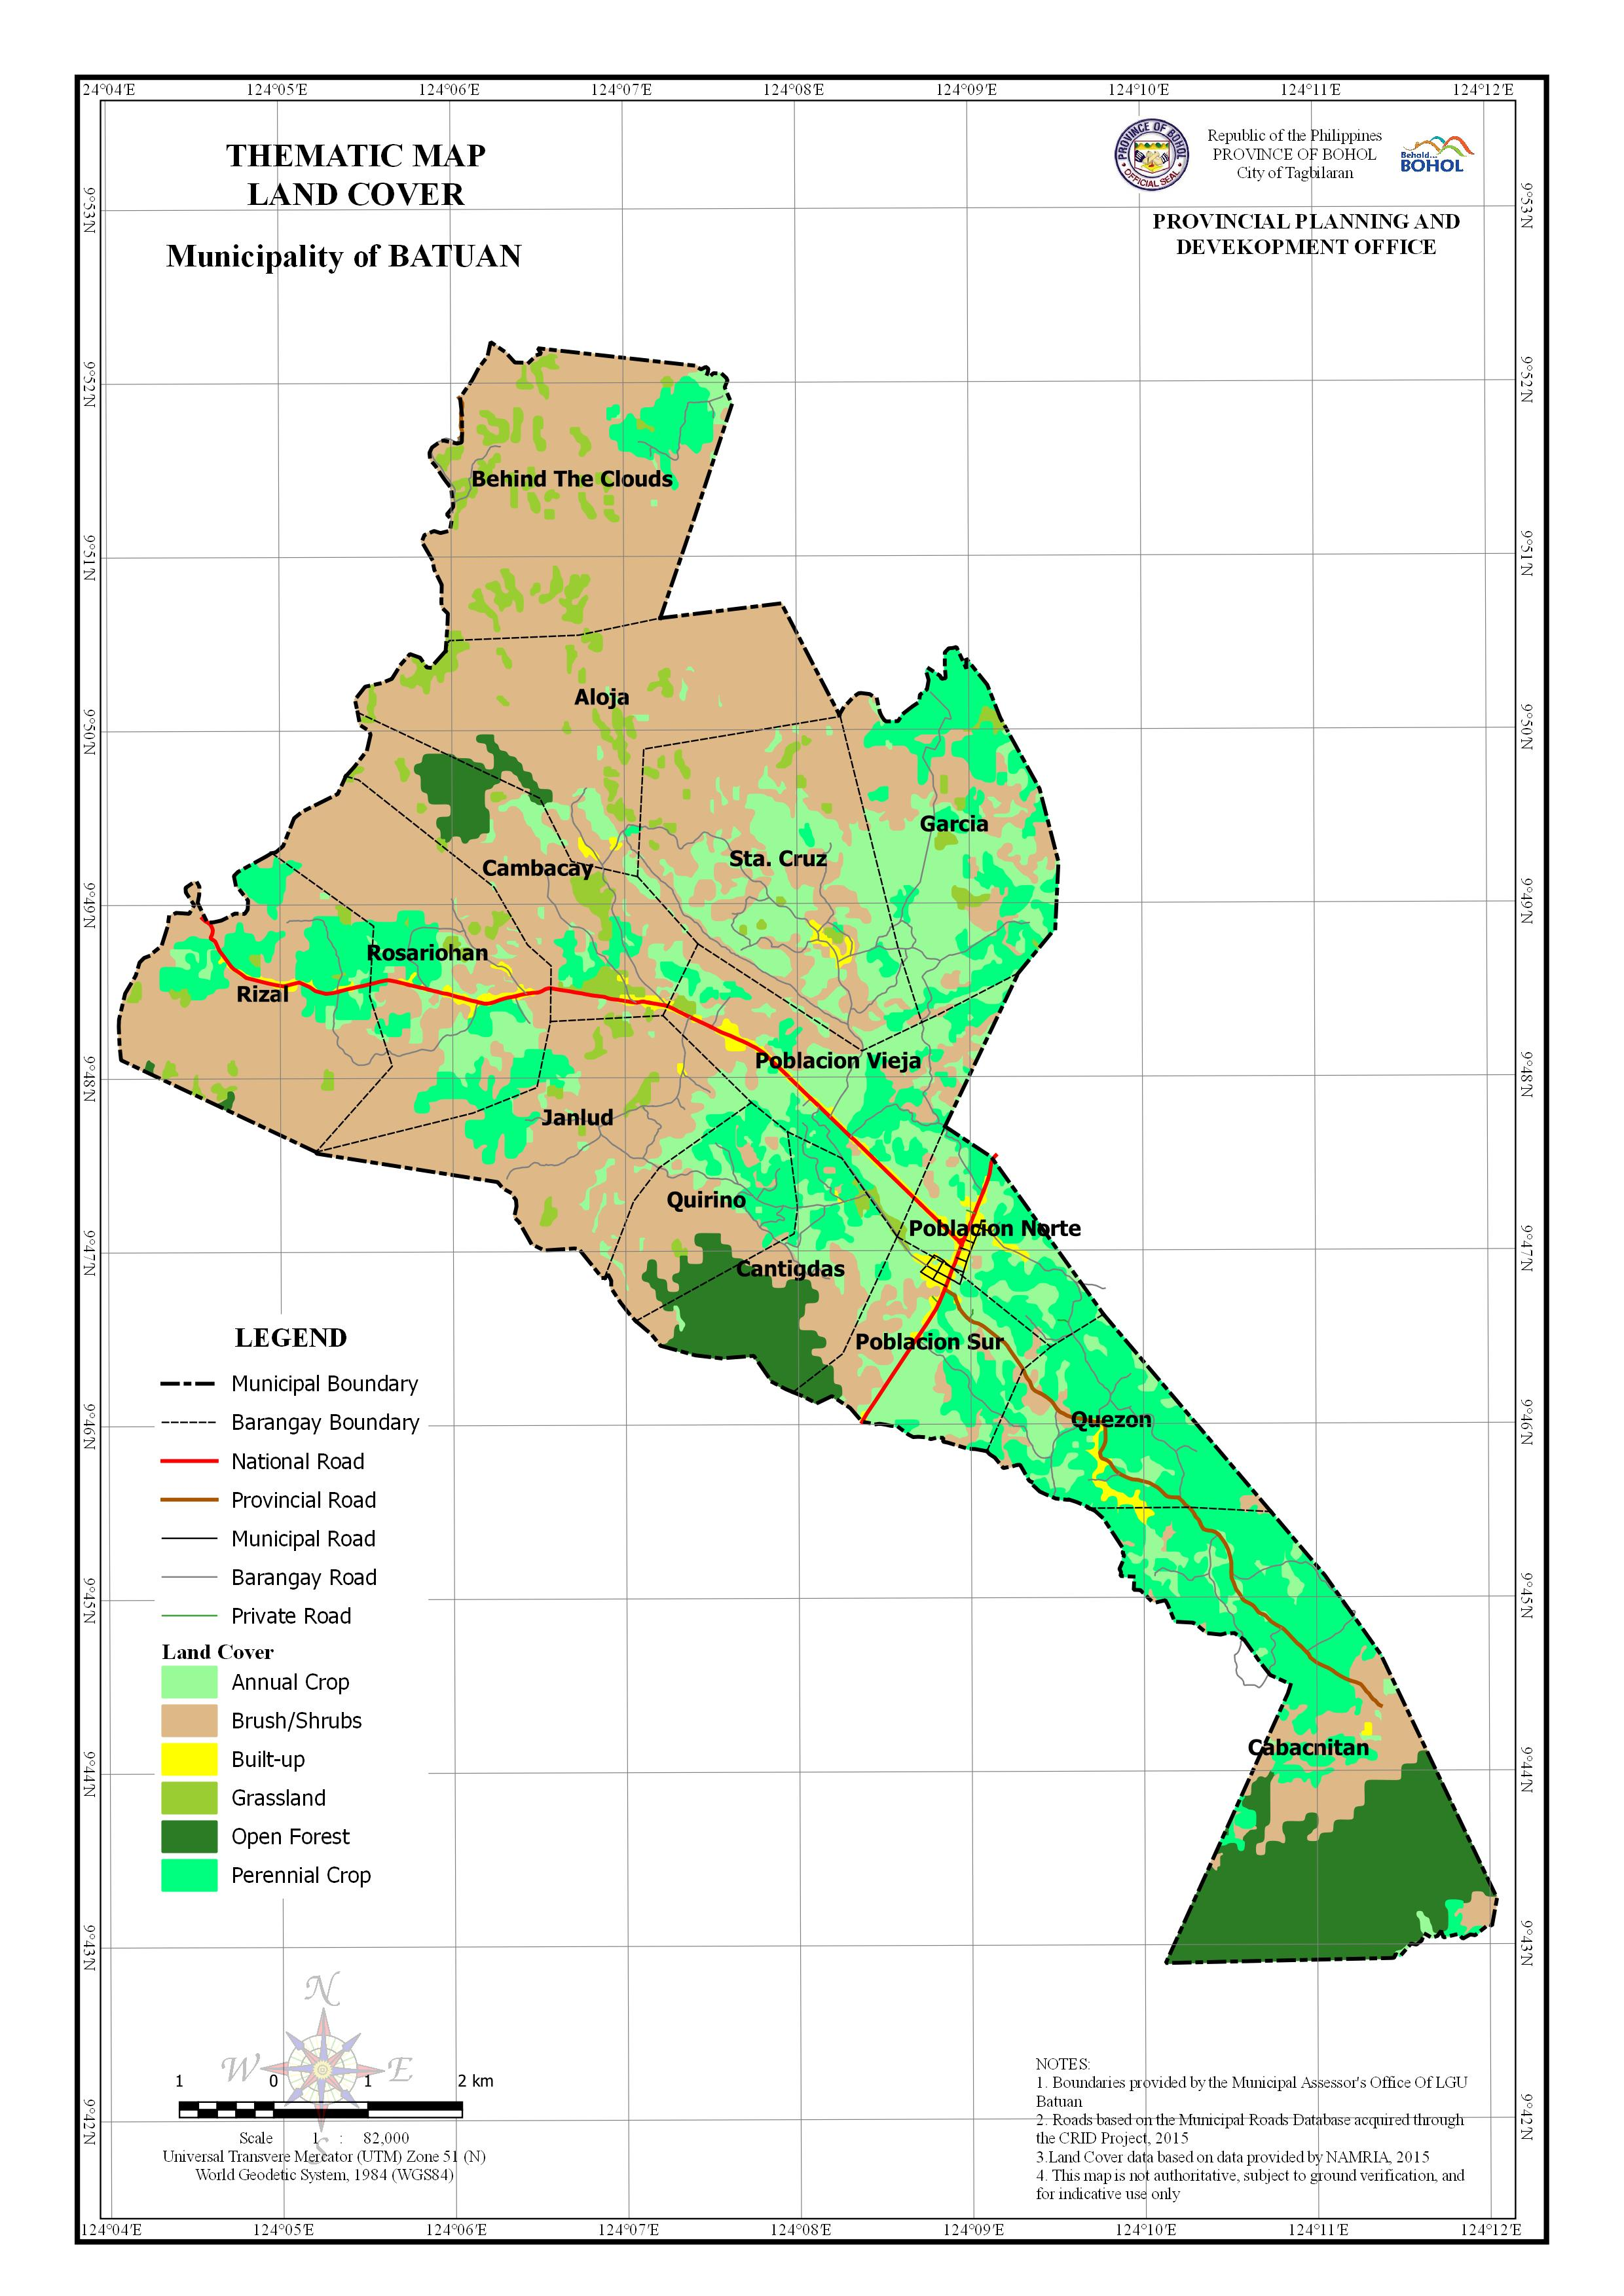 Land Cover Map of the Municipality of Batuan